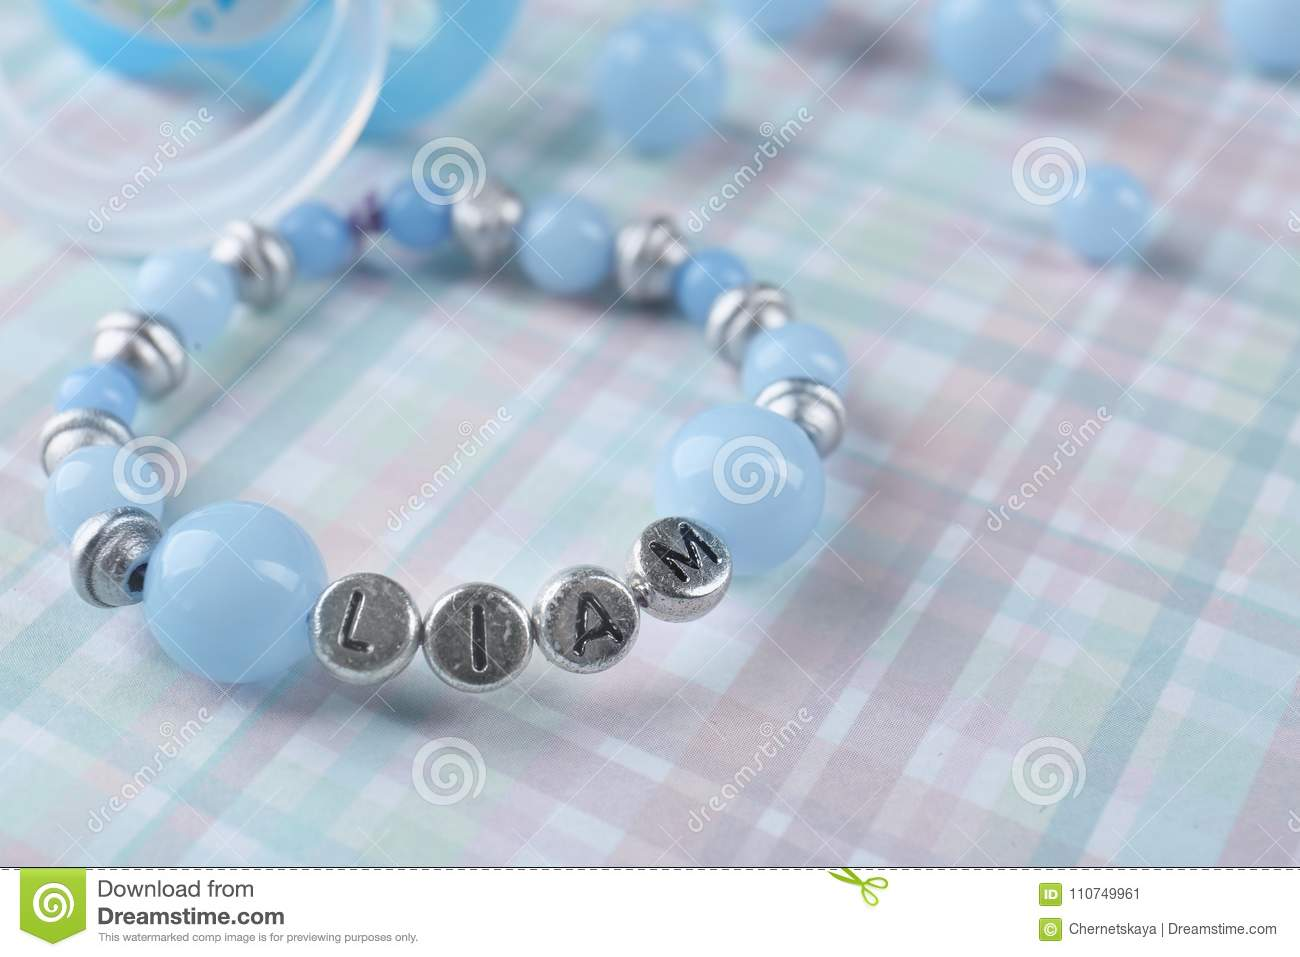 Bracelet with baby name